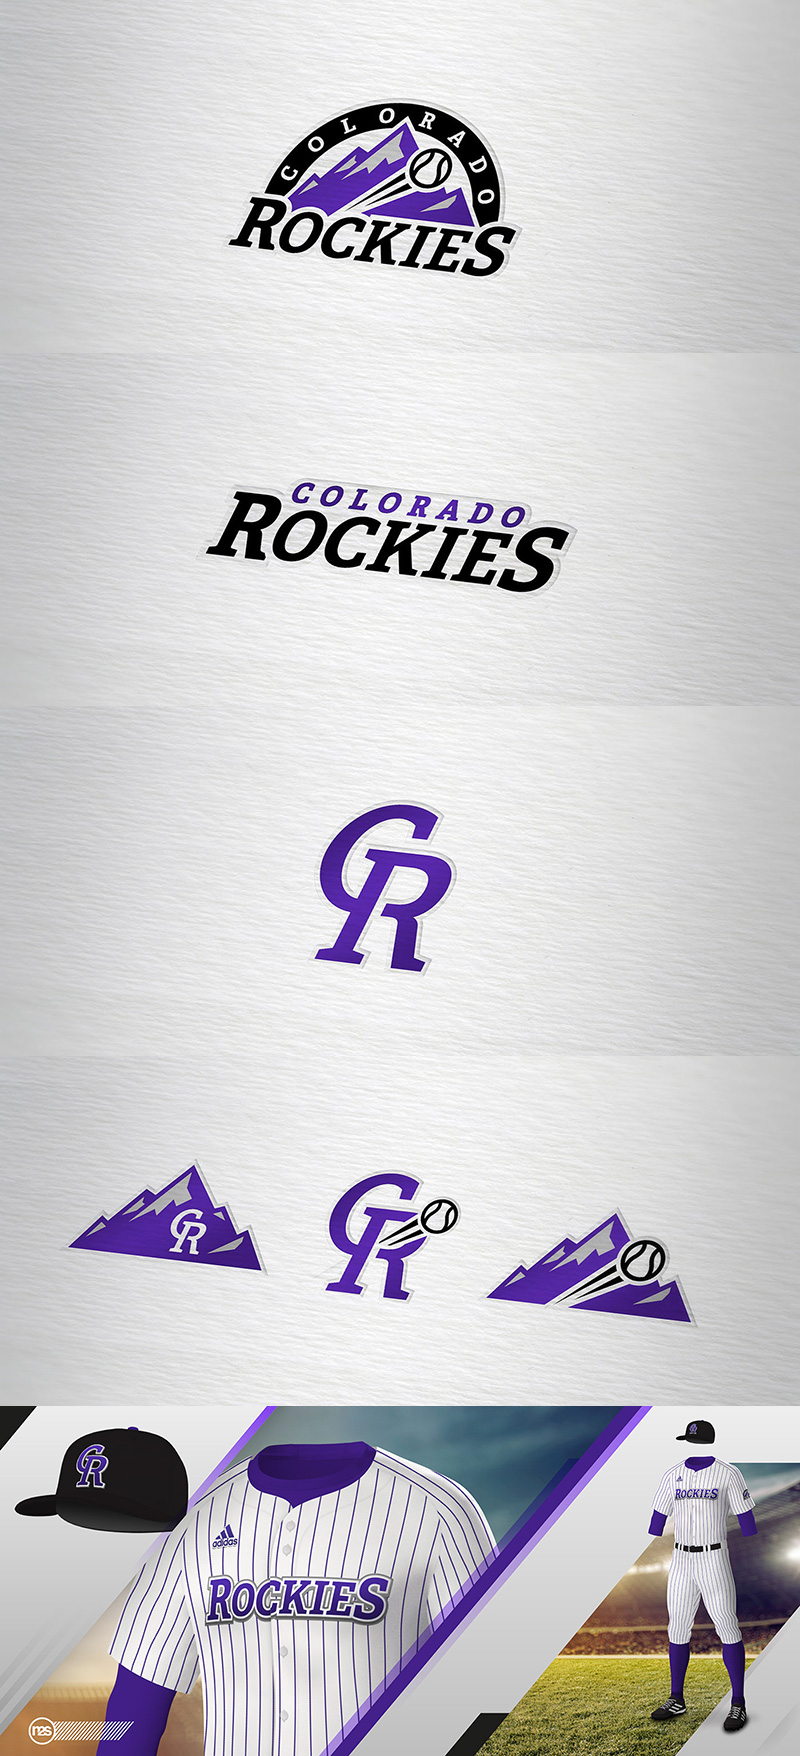 Colorado Rockies (Concept) by Manuel Dos Santos